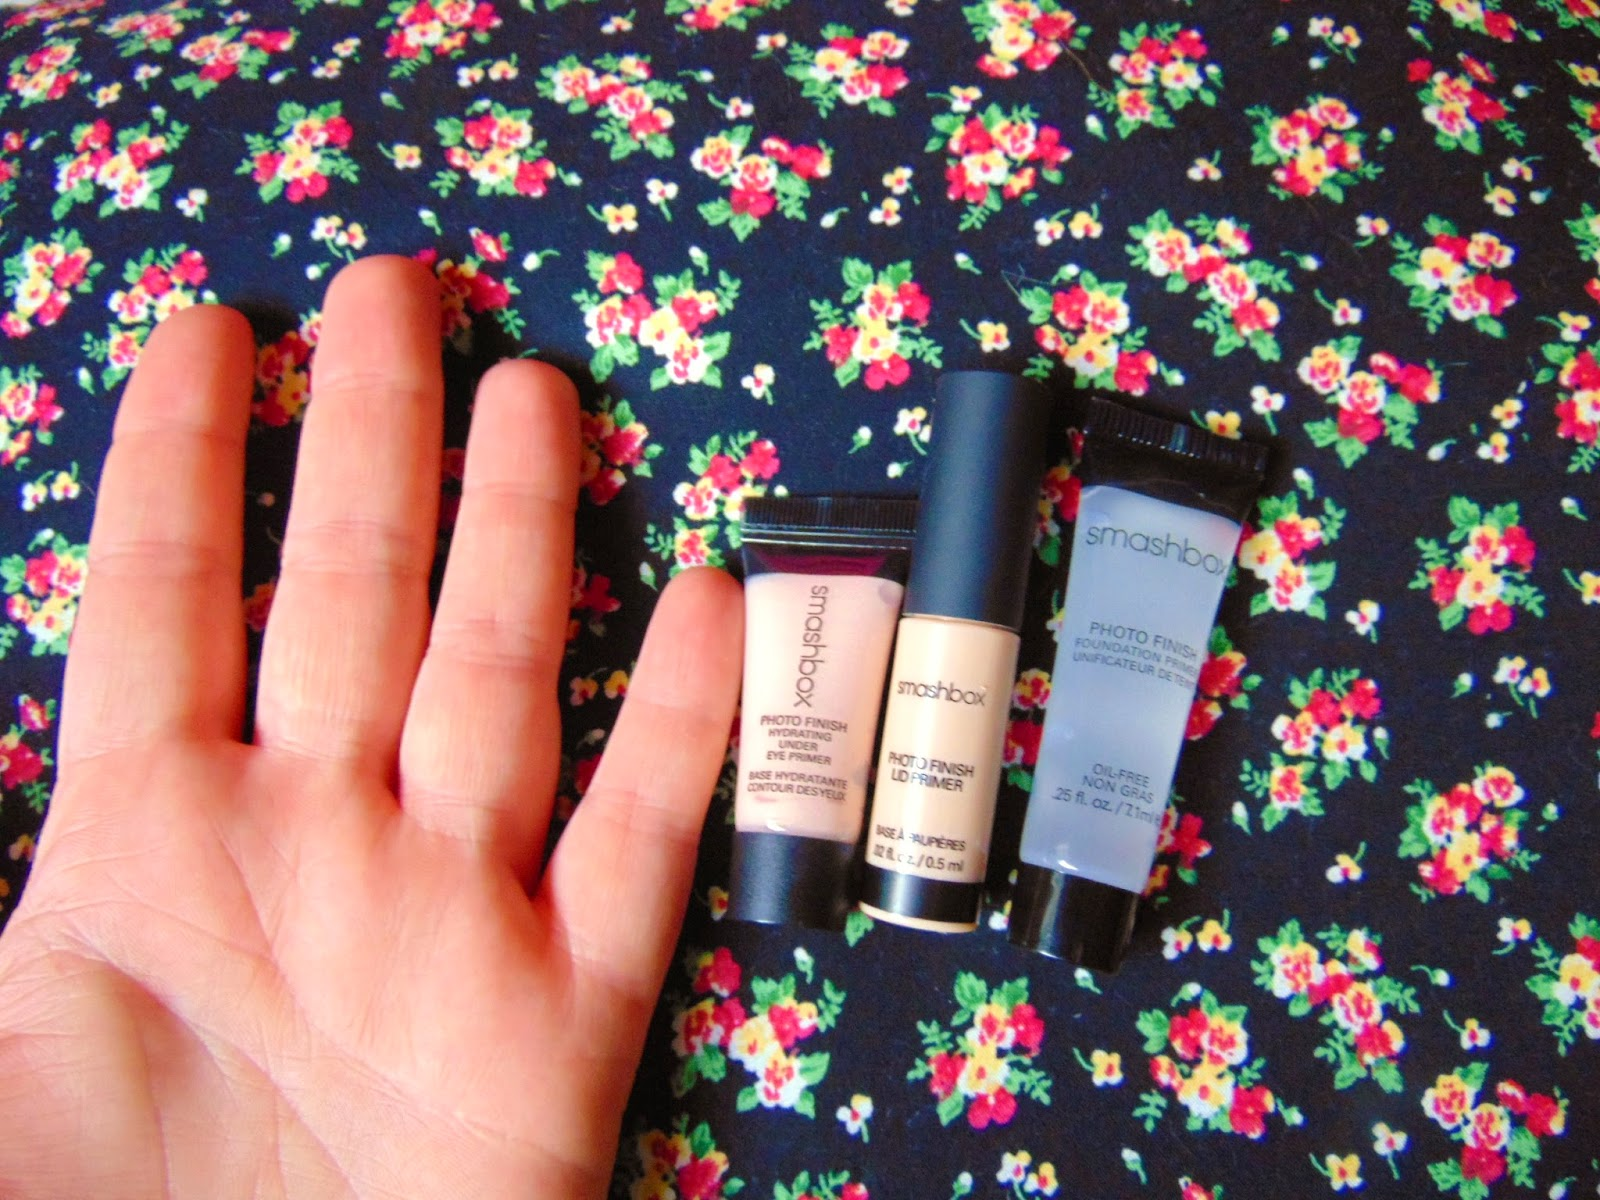 smashbox primer try it kit scale picture